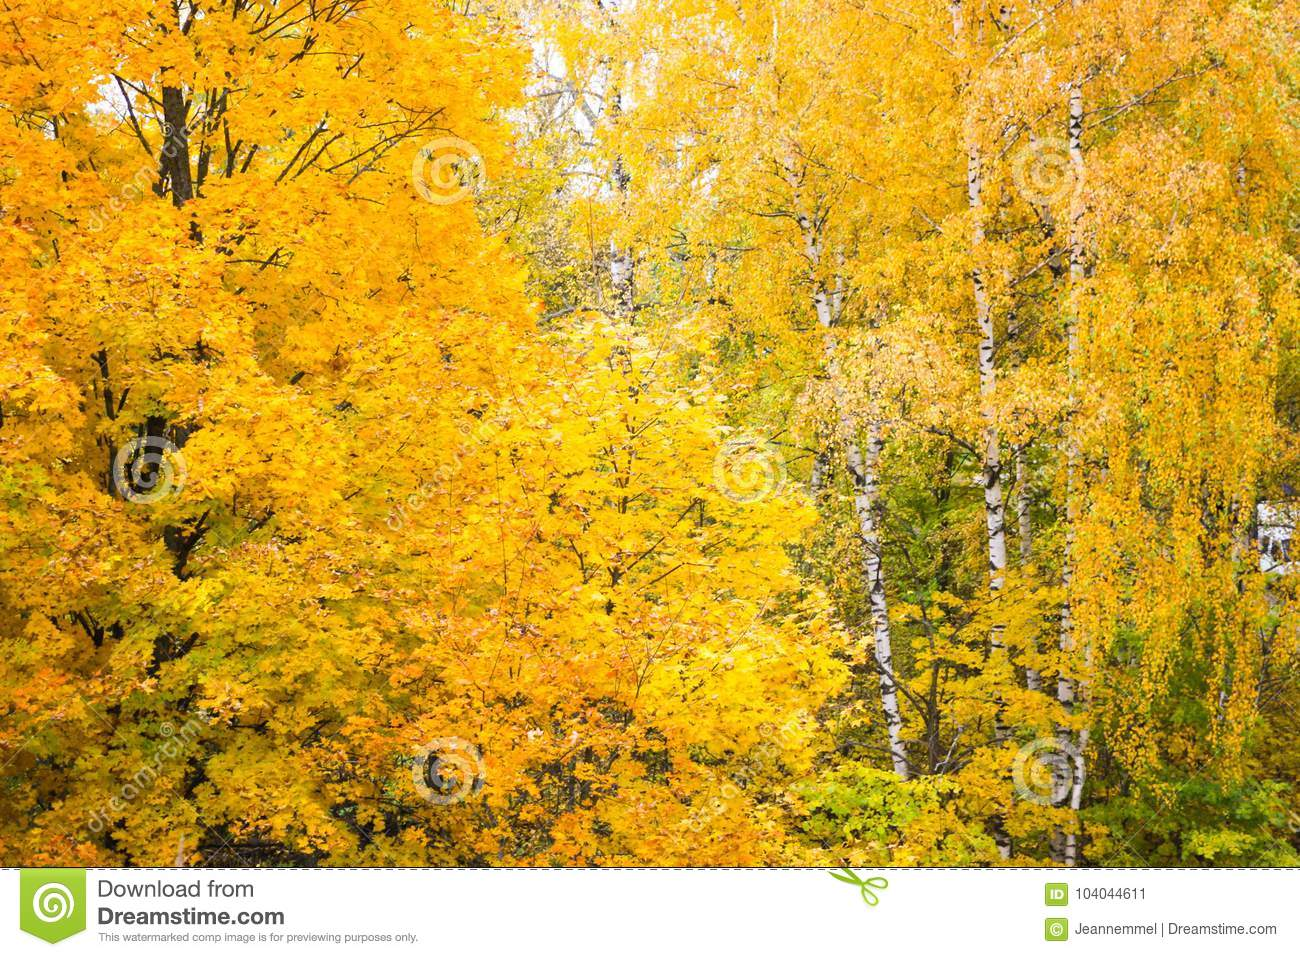 Yellow autumn birch and maple trees in the forest